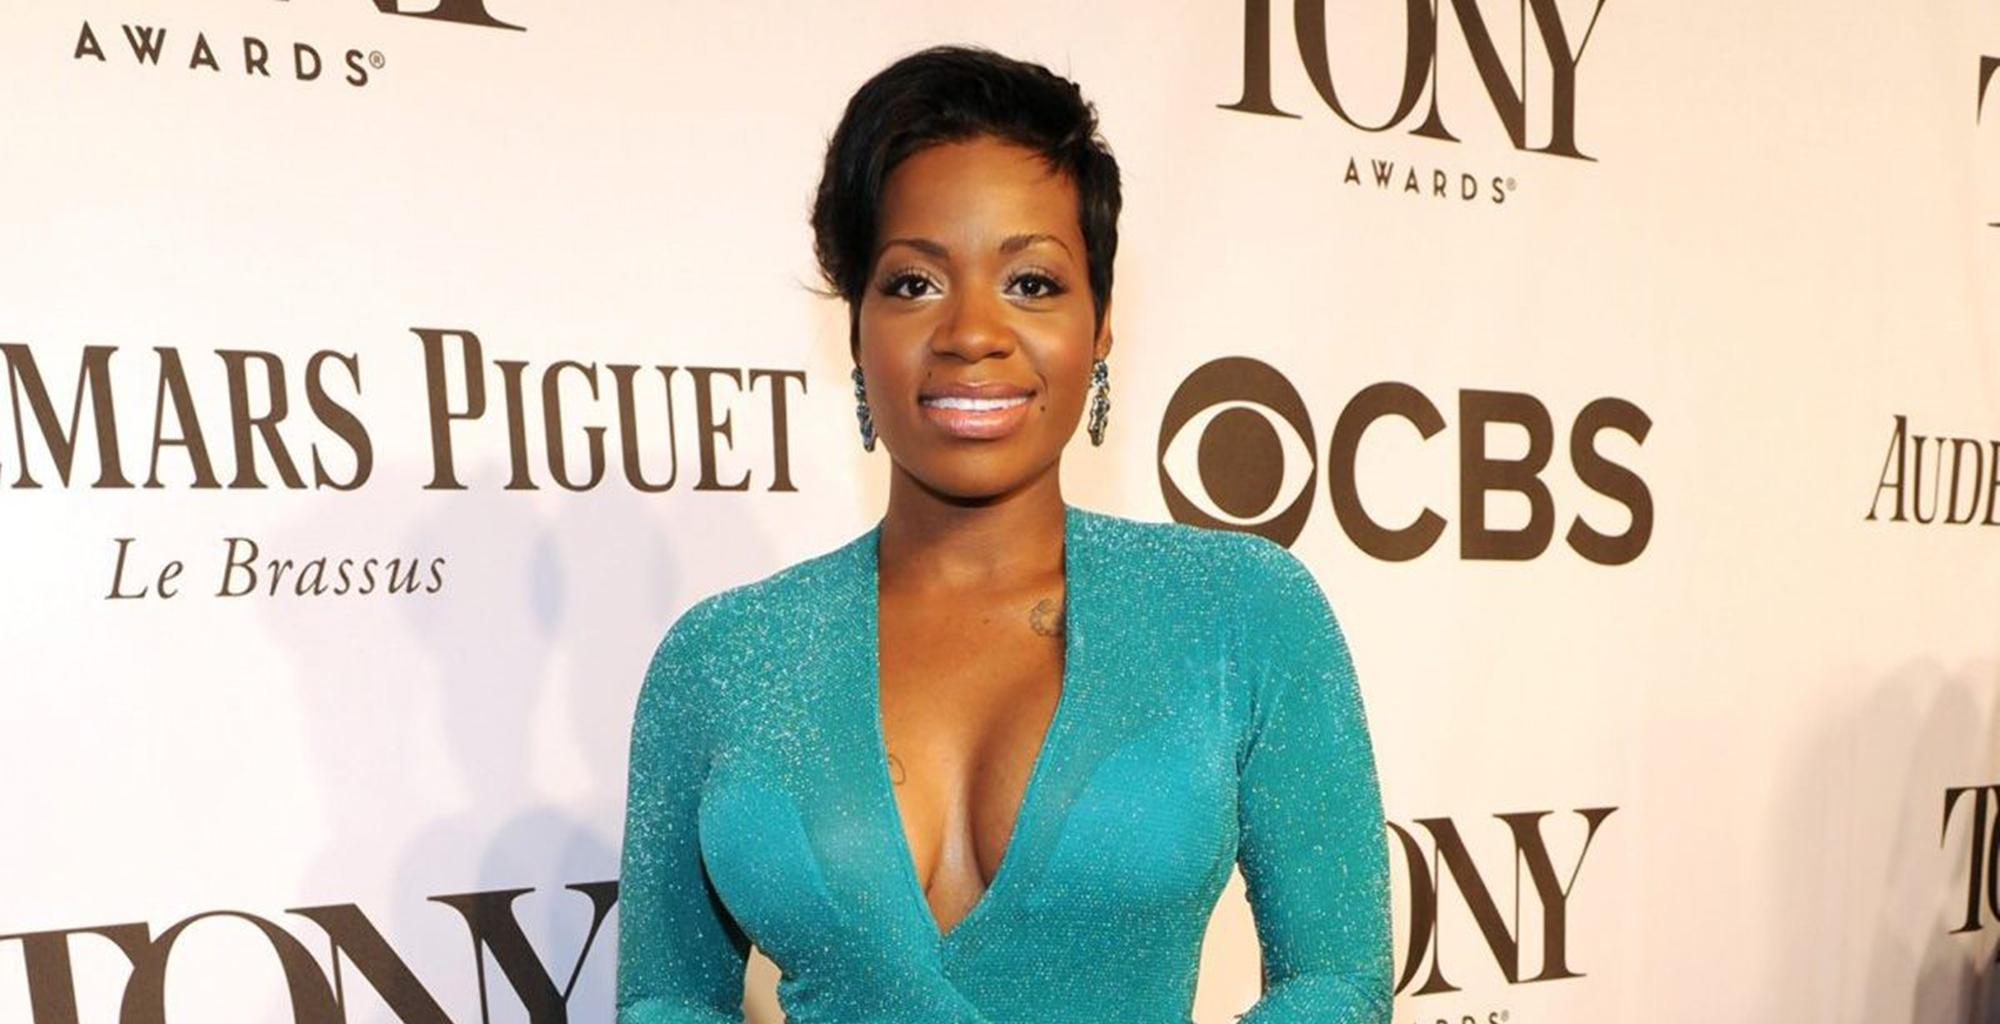 Fantasia Barrino Shows Off Her Massive Christmas Tree While Wearing Lingerie In New Video